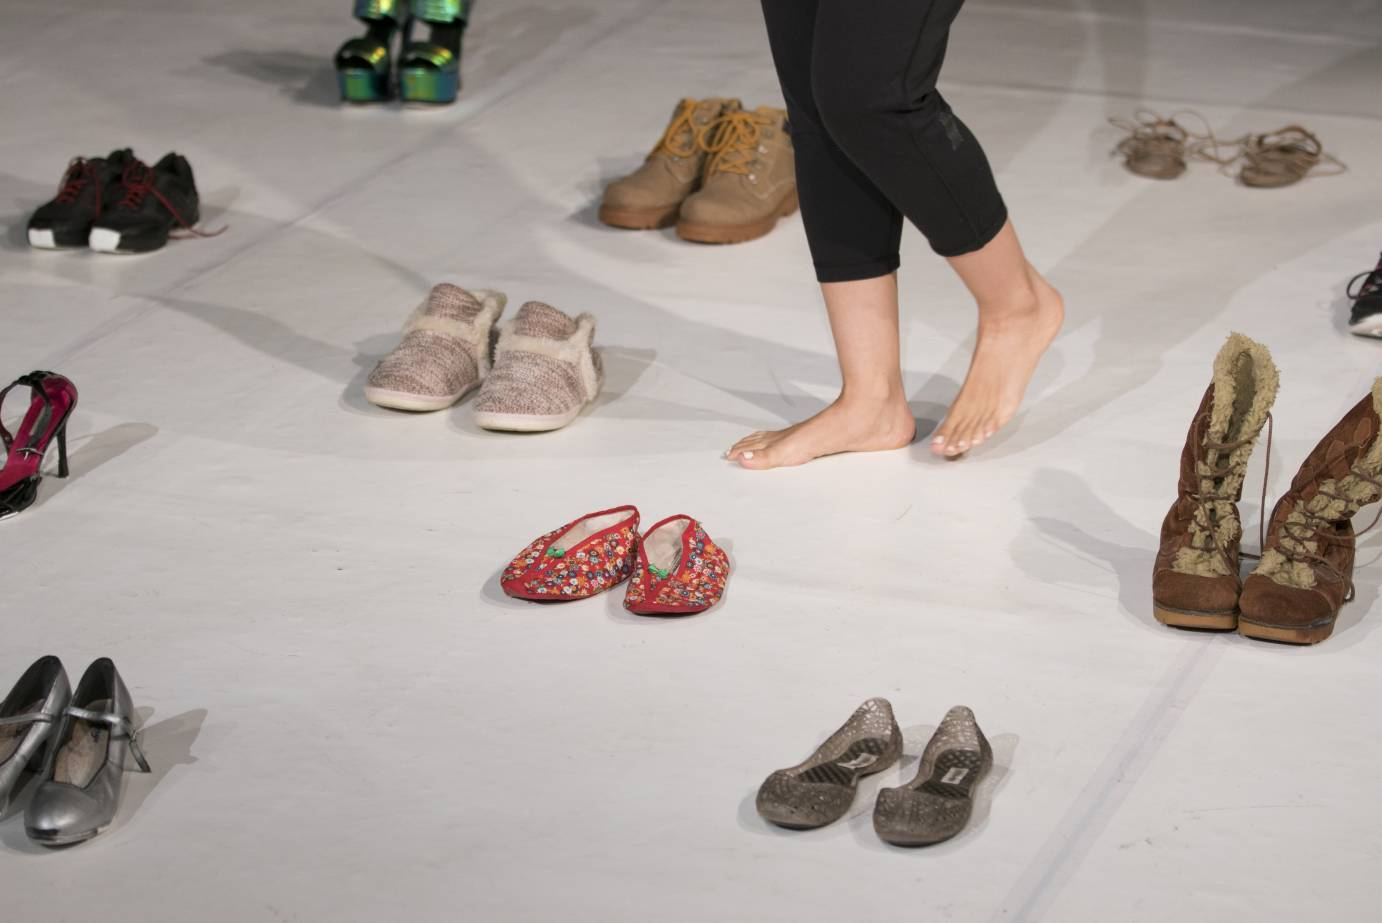 Woman's legs among a grid of paired shoes